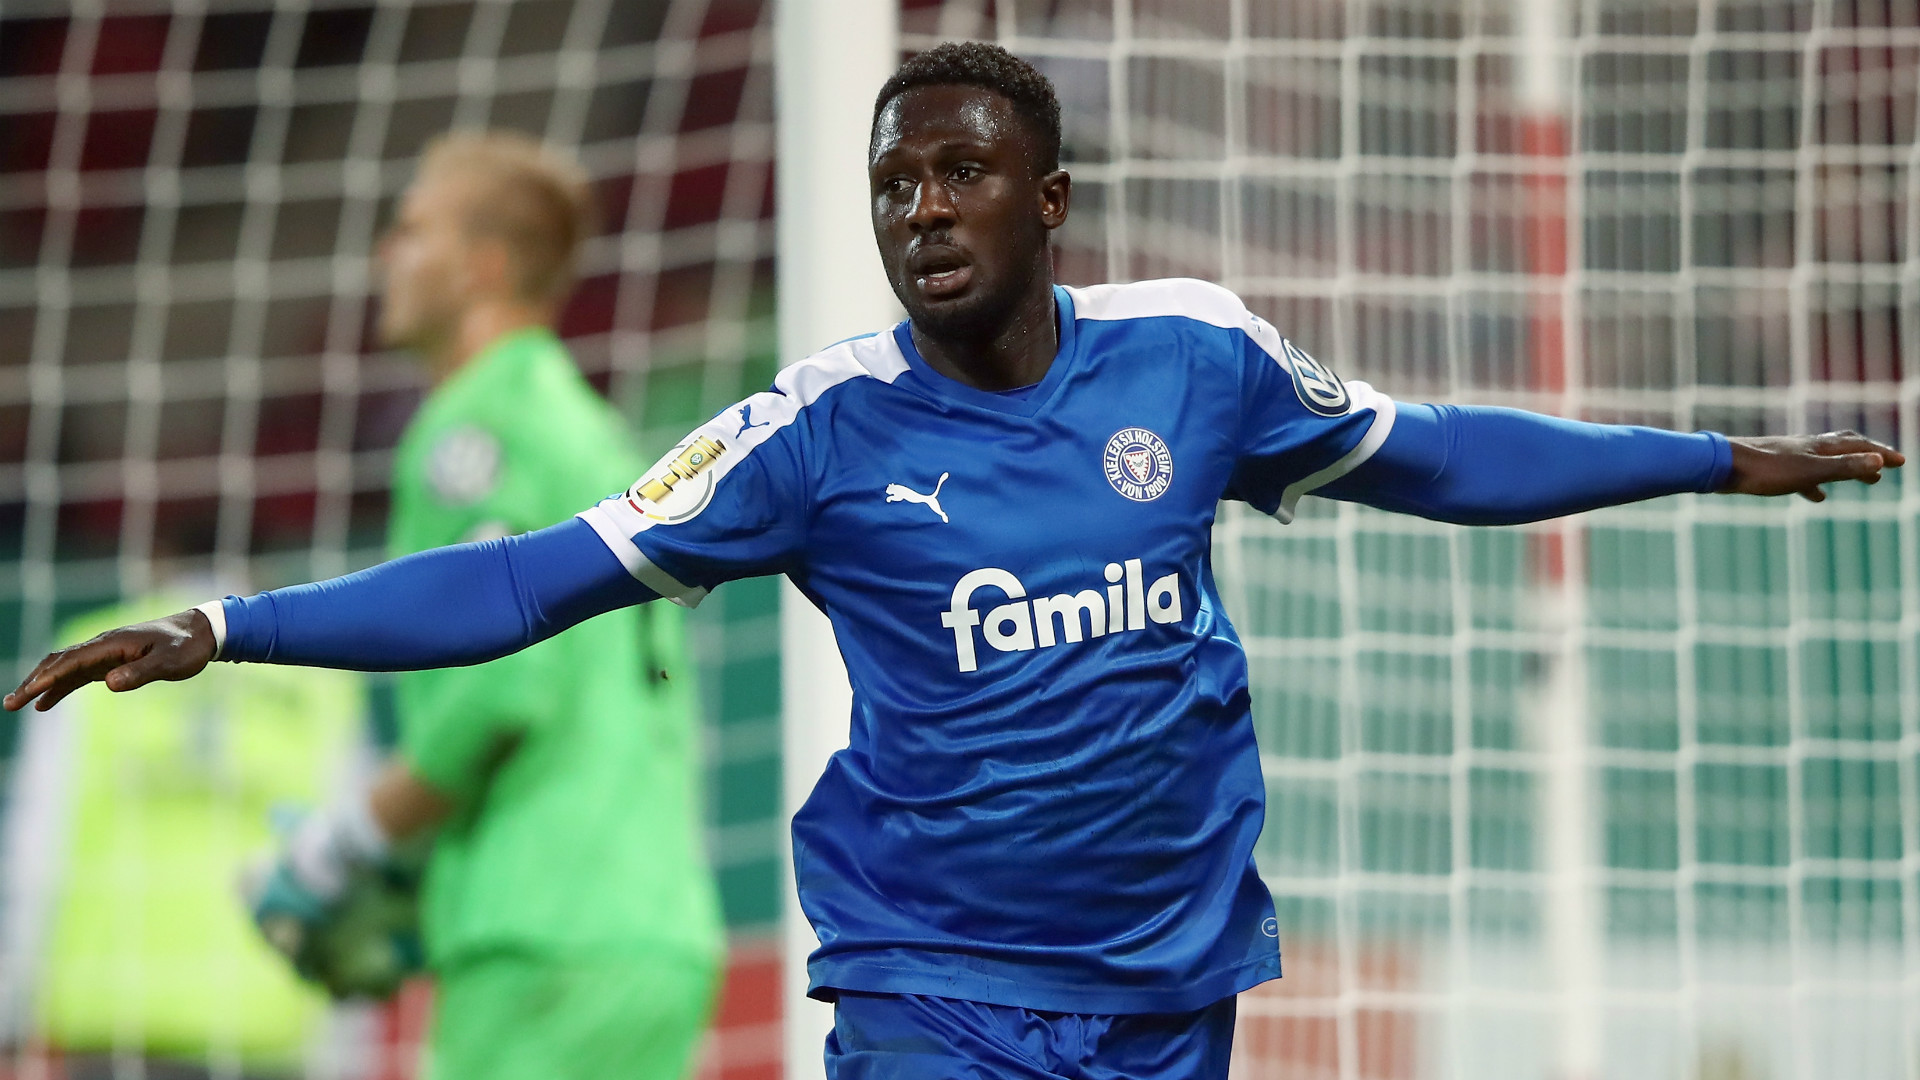 Ghana scout Germany-based Kingsley Schindler with a view to national team call-up